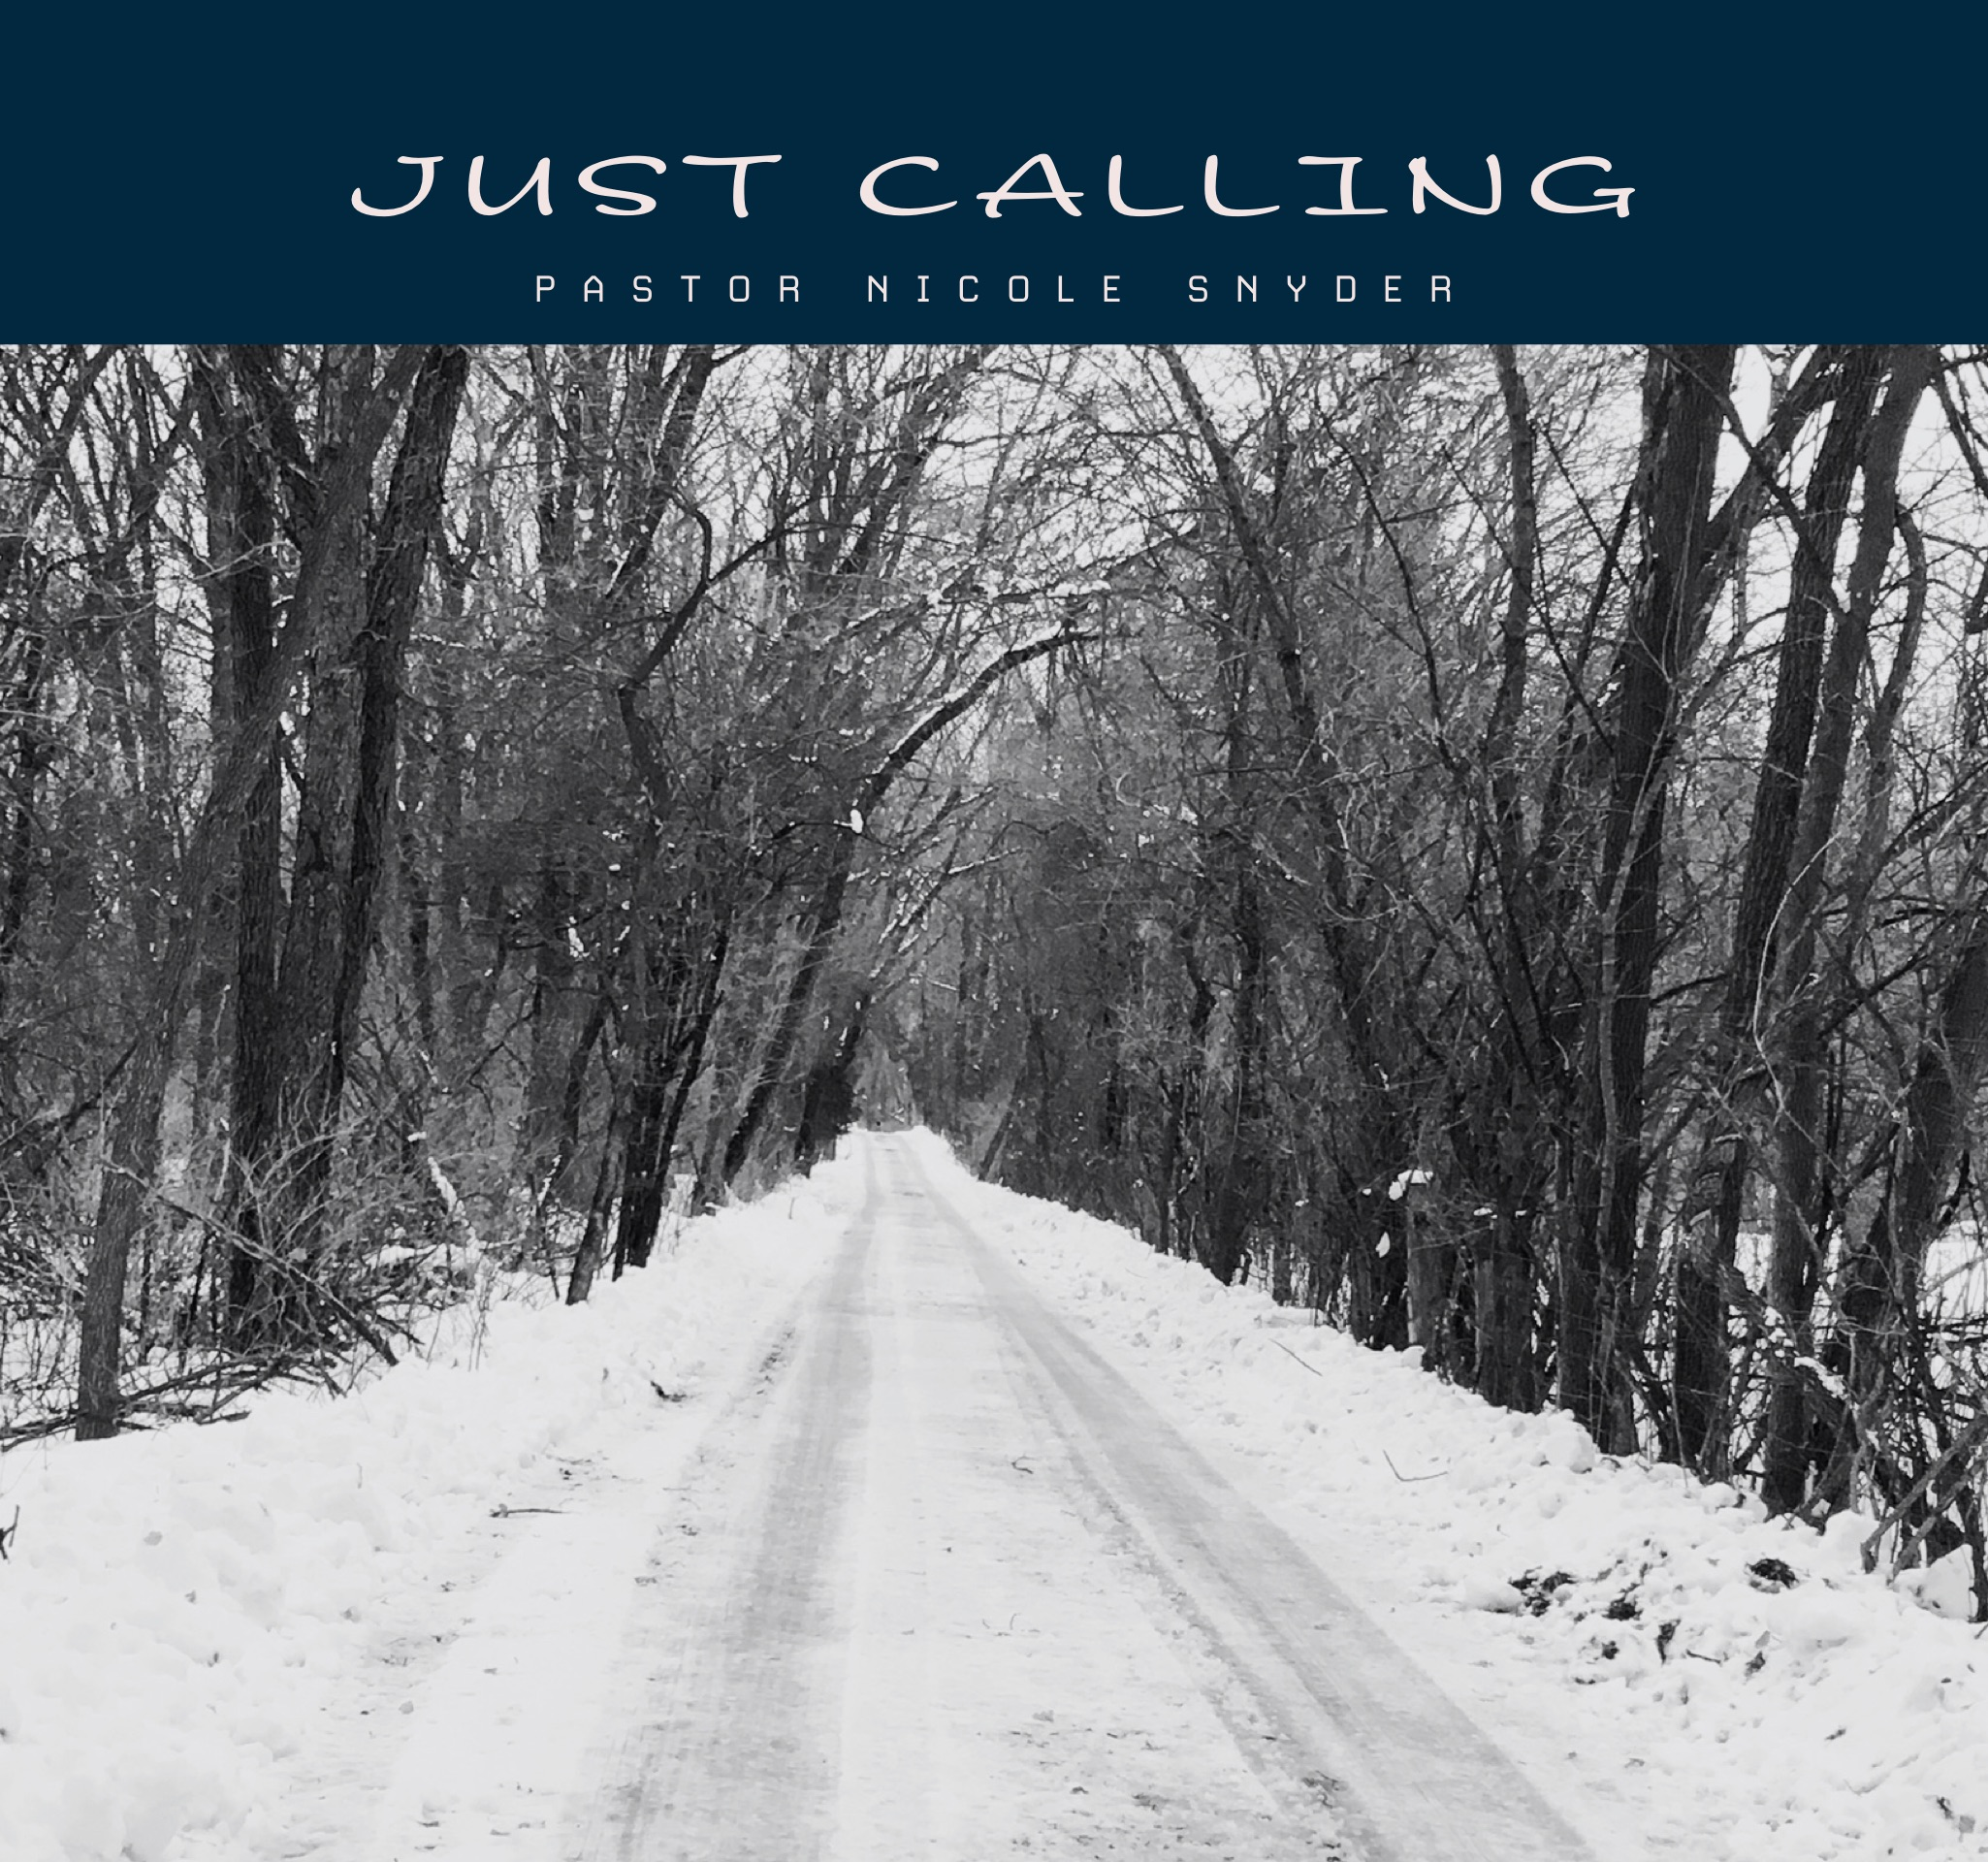 Just Calling